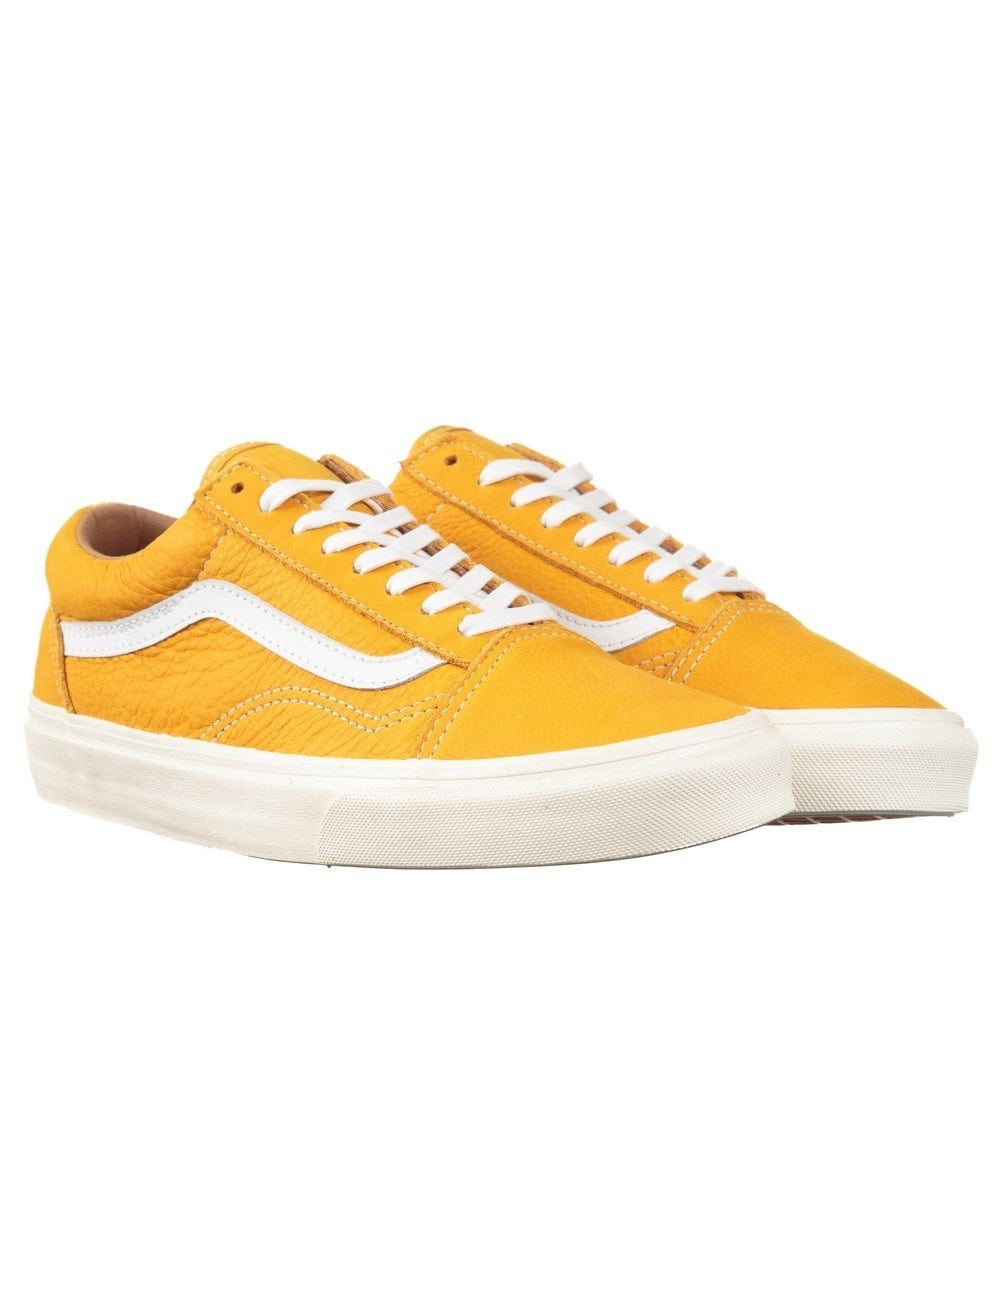 1d3b5cff02cf87 Vans Classics Old Skool Reissue Shoes - Mineral Yellow (Classic Leather)